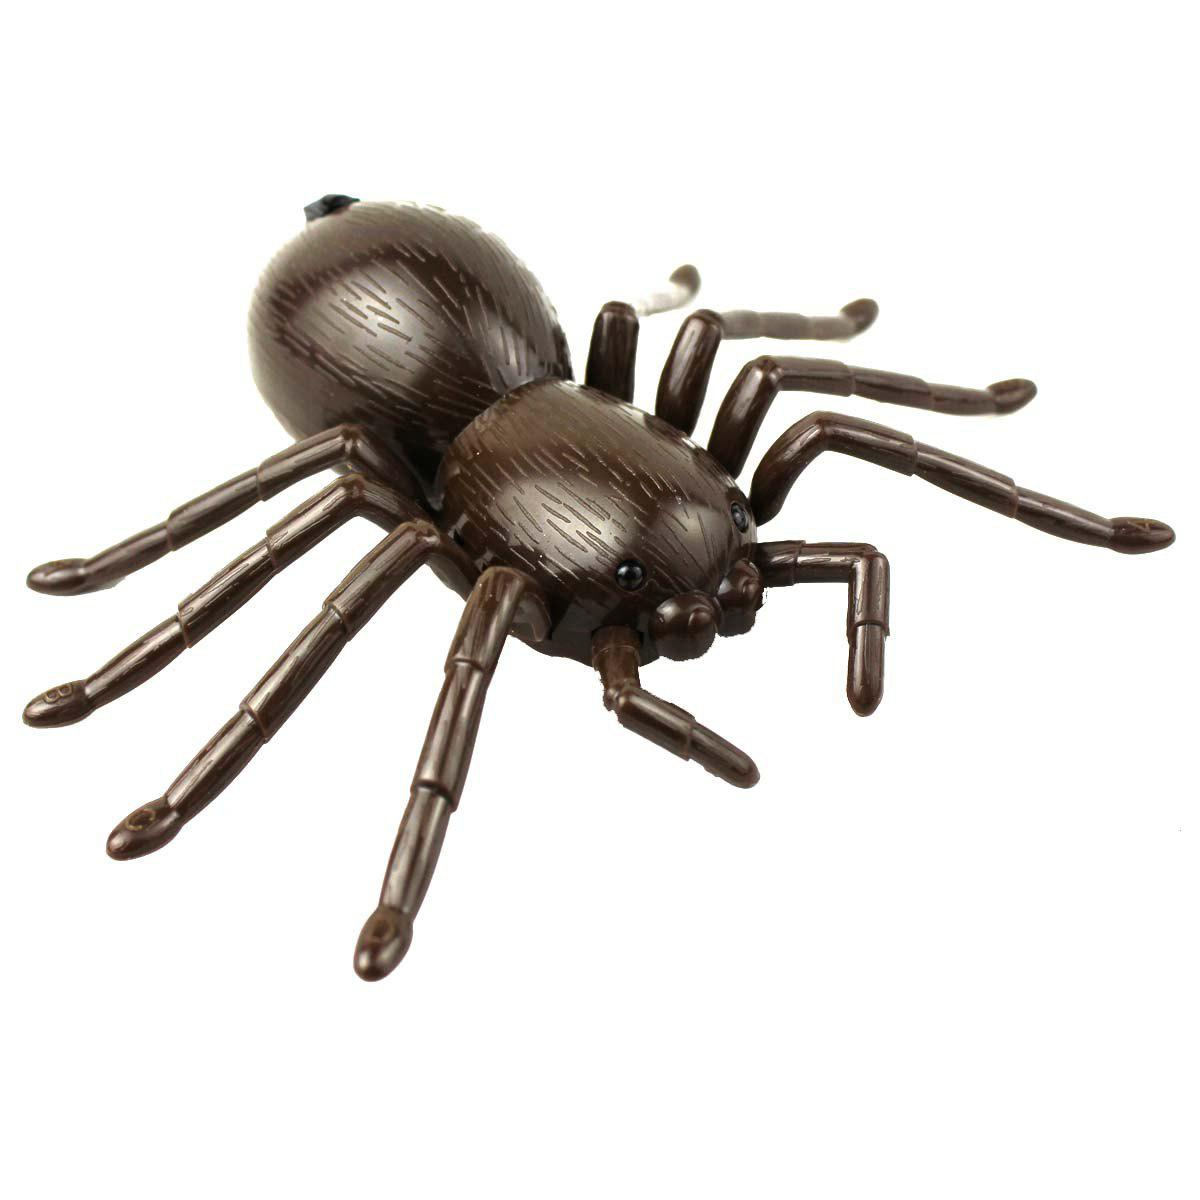 Simulation Remote Control Spider Electronic Animal Model Toy  infrared remote control simulation brazil turtle toy animal model